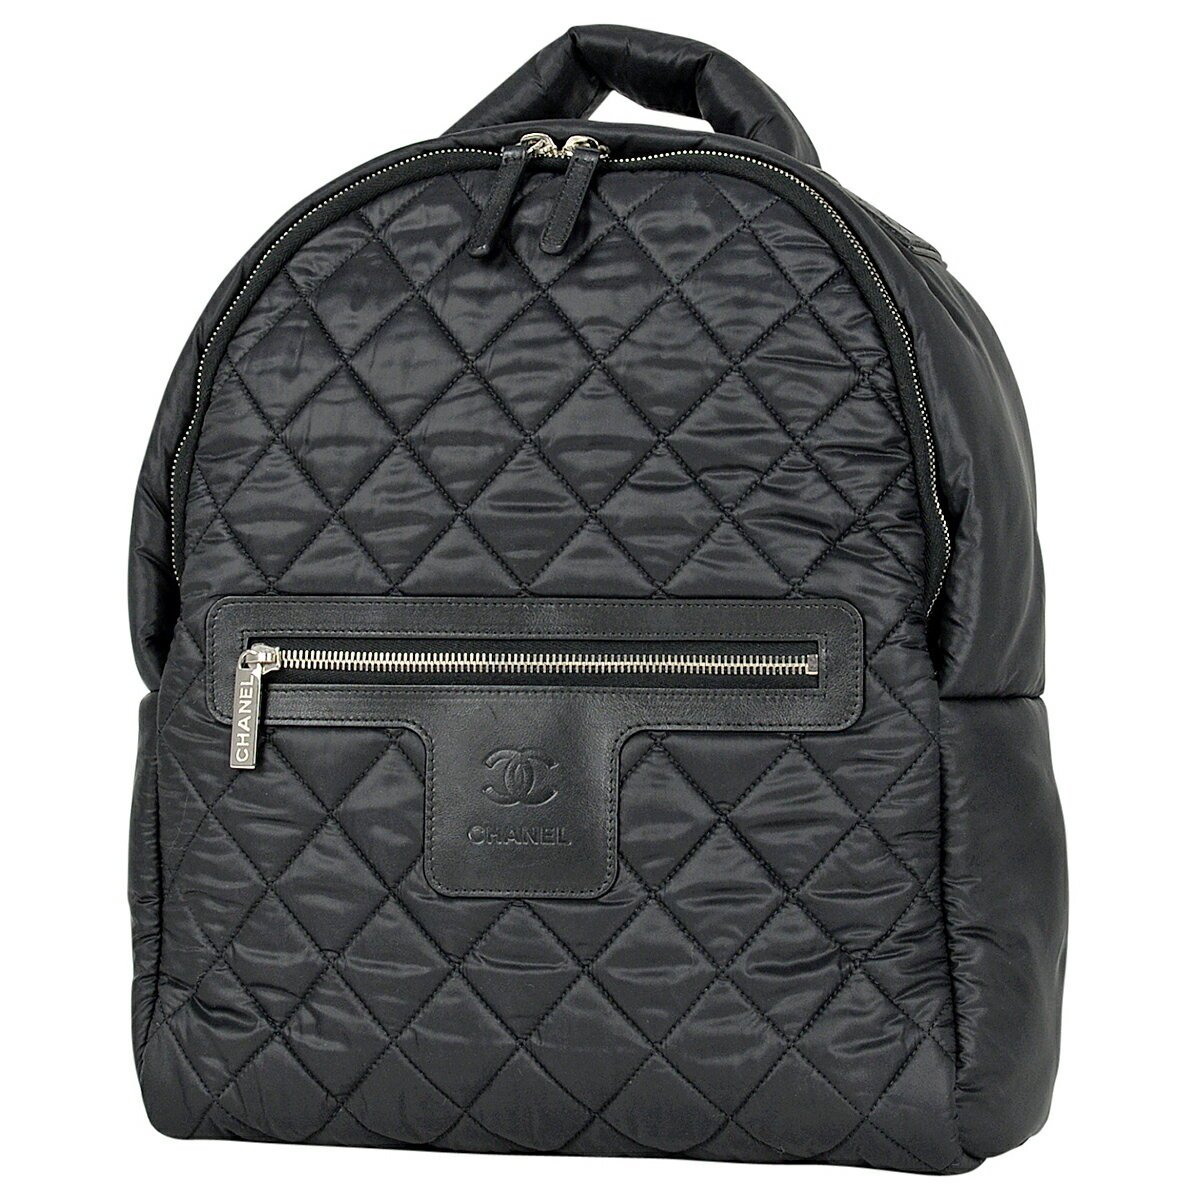 CHANEL quilted backpack 70OFF!64 20:00-611 1:59 ...